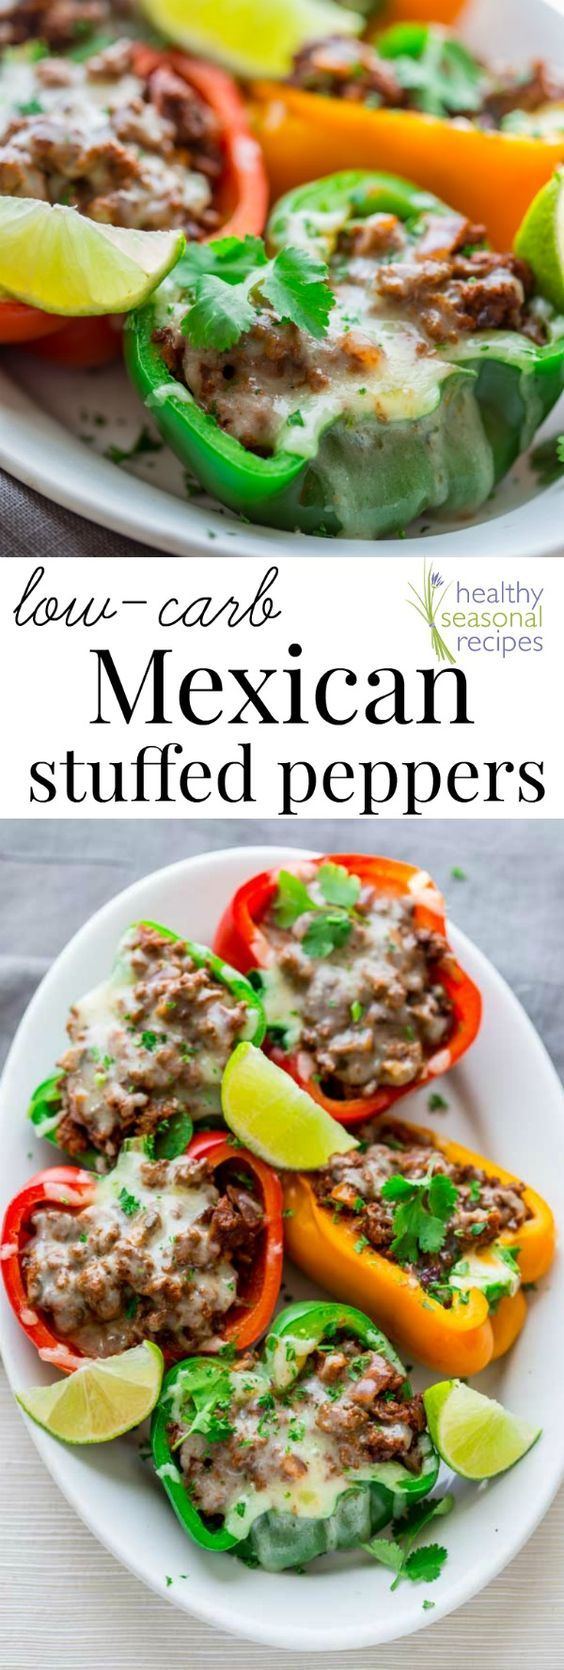 These cheesy spicy Mexican stuffed bell peppers come together in only 20 minutes for a low-carb gluten-free and totally delicious